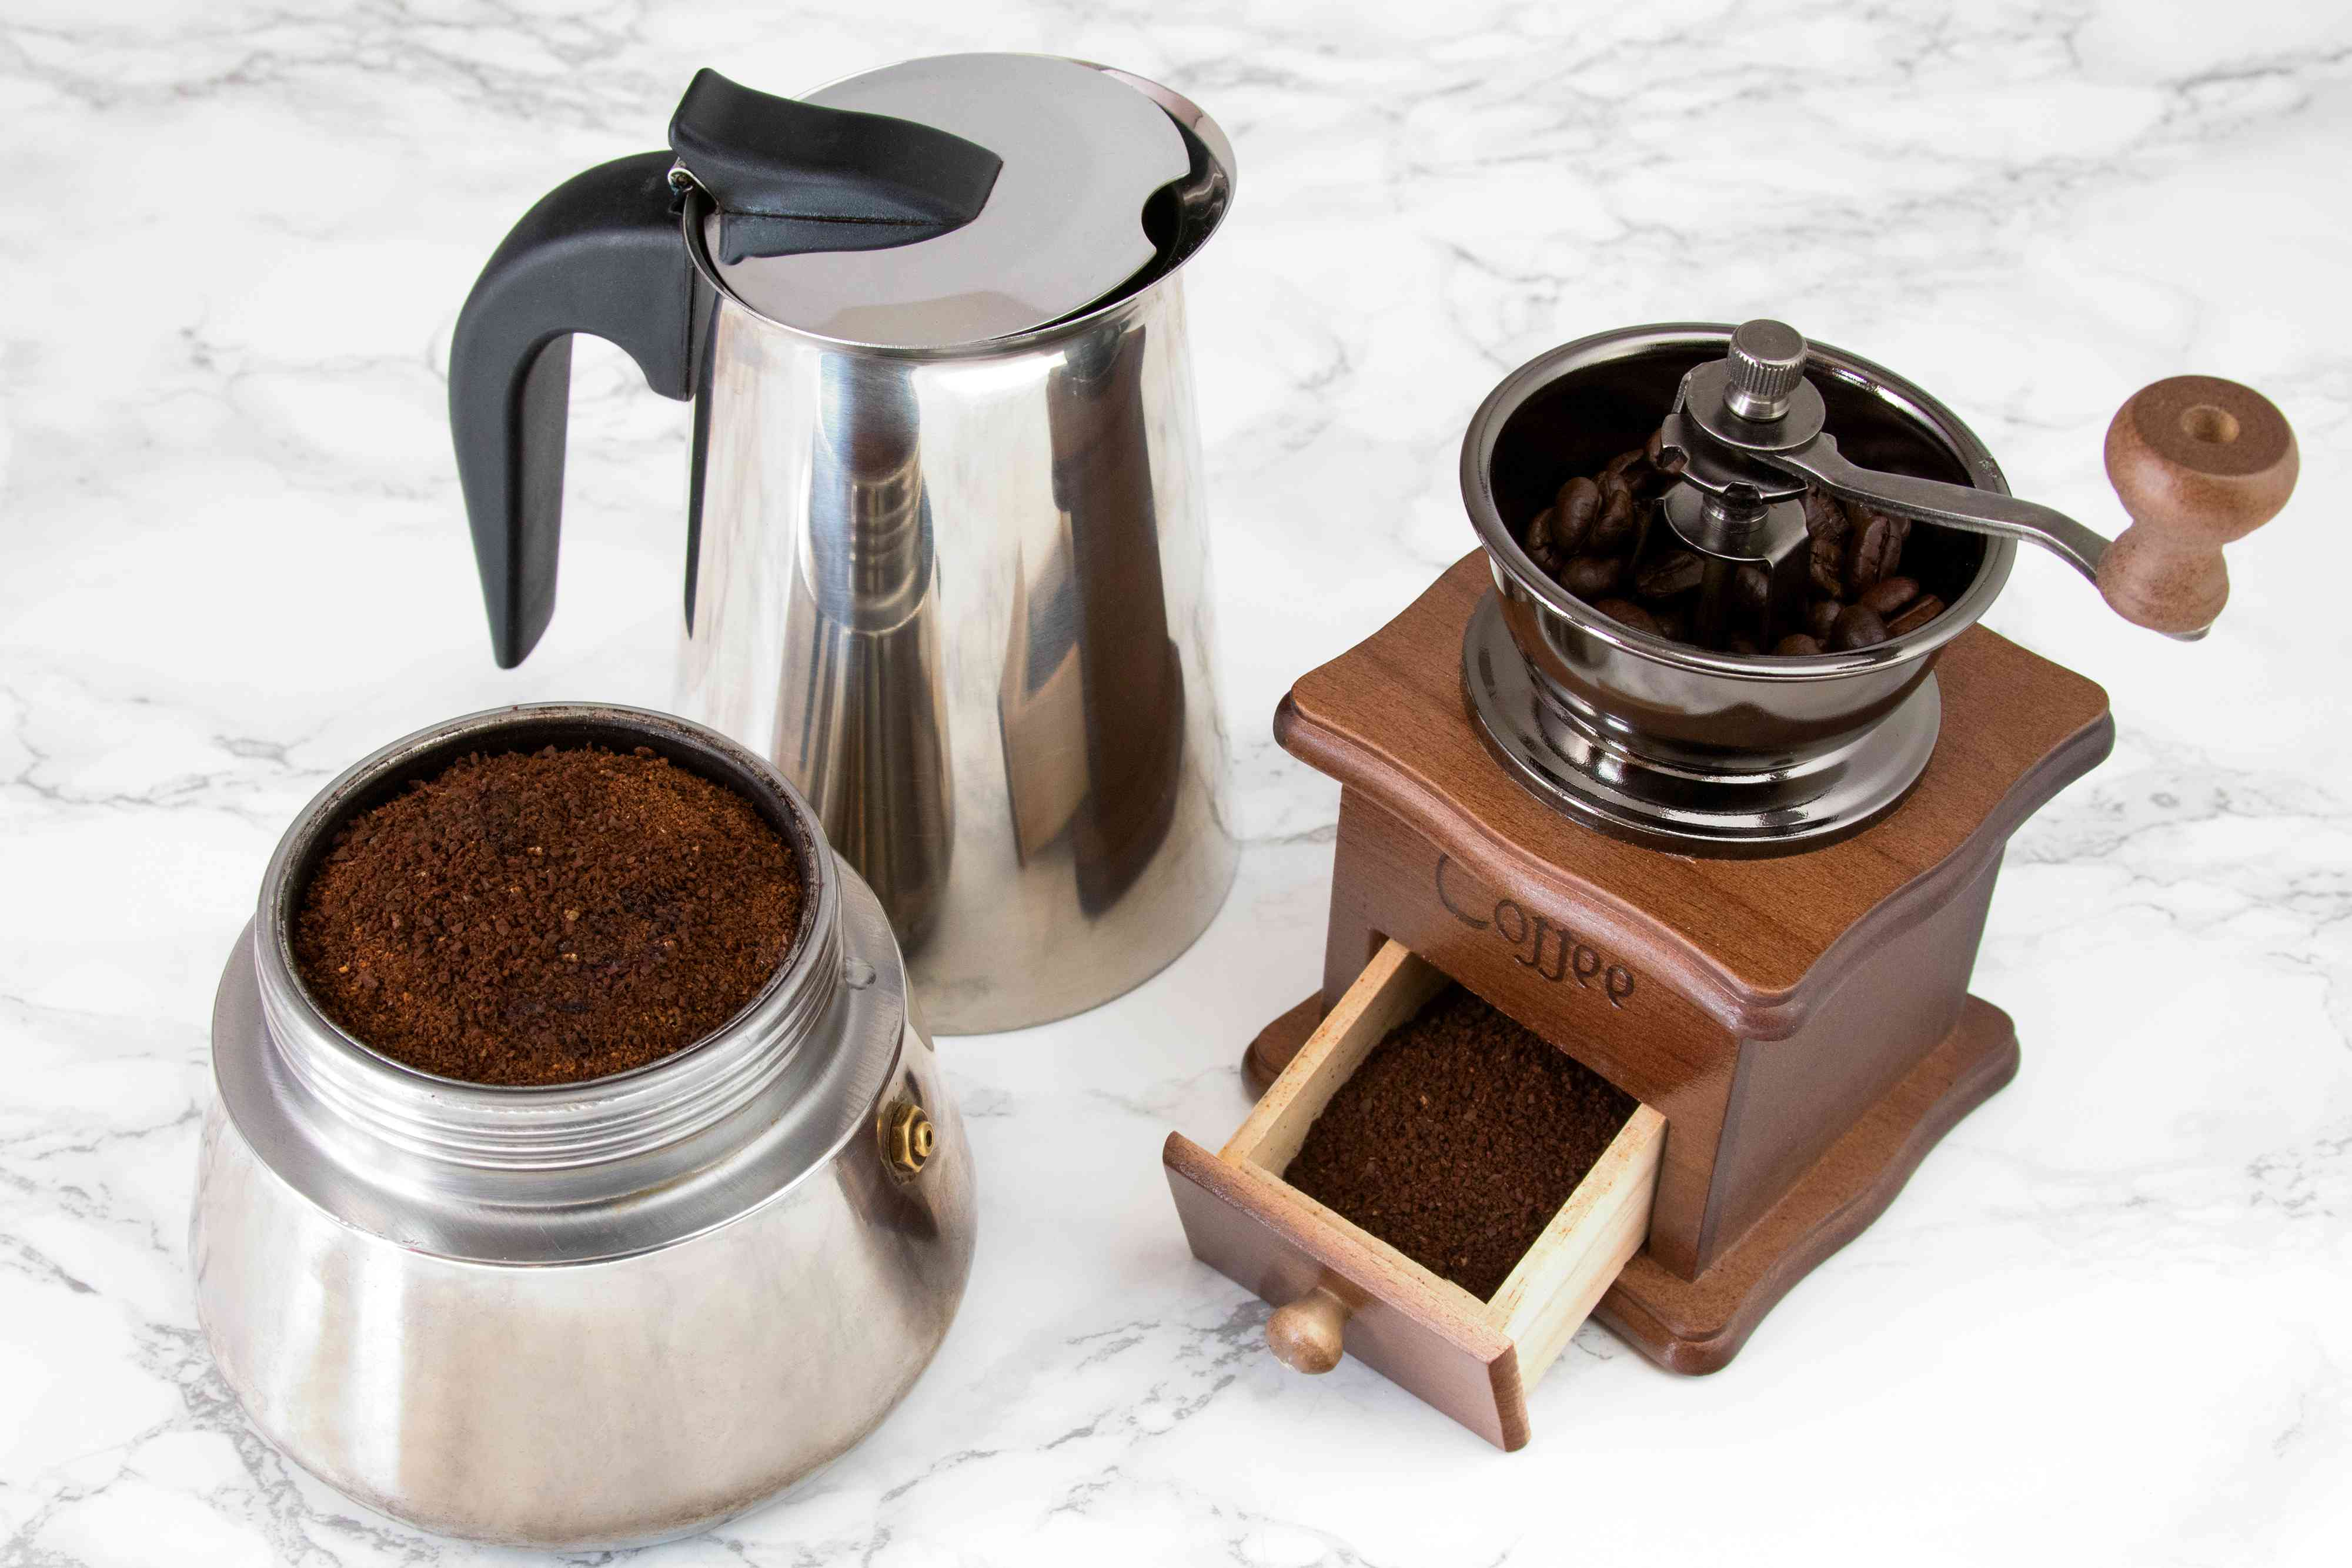 Brewing Coffee in a Stovetop Espresso Maker for Cuban Coffee